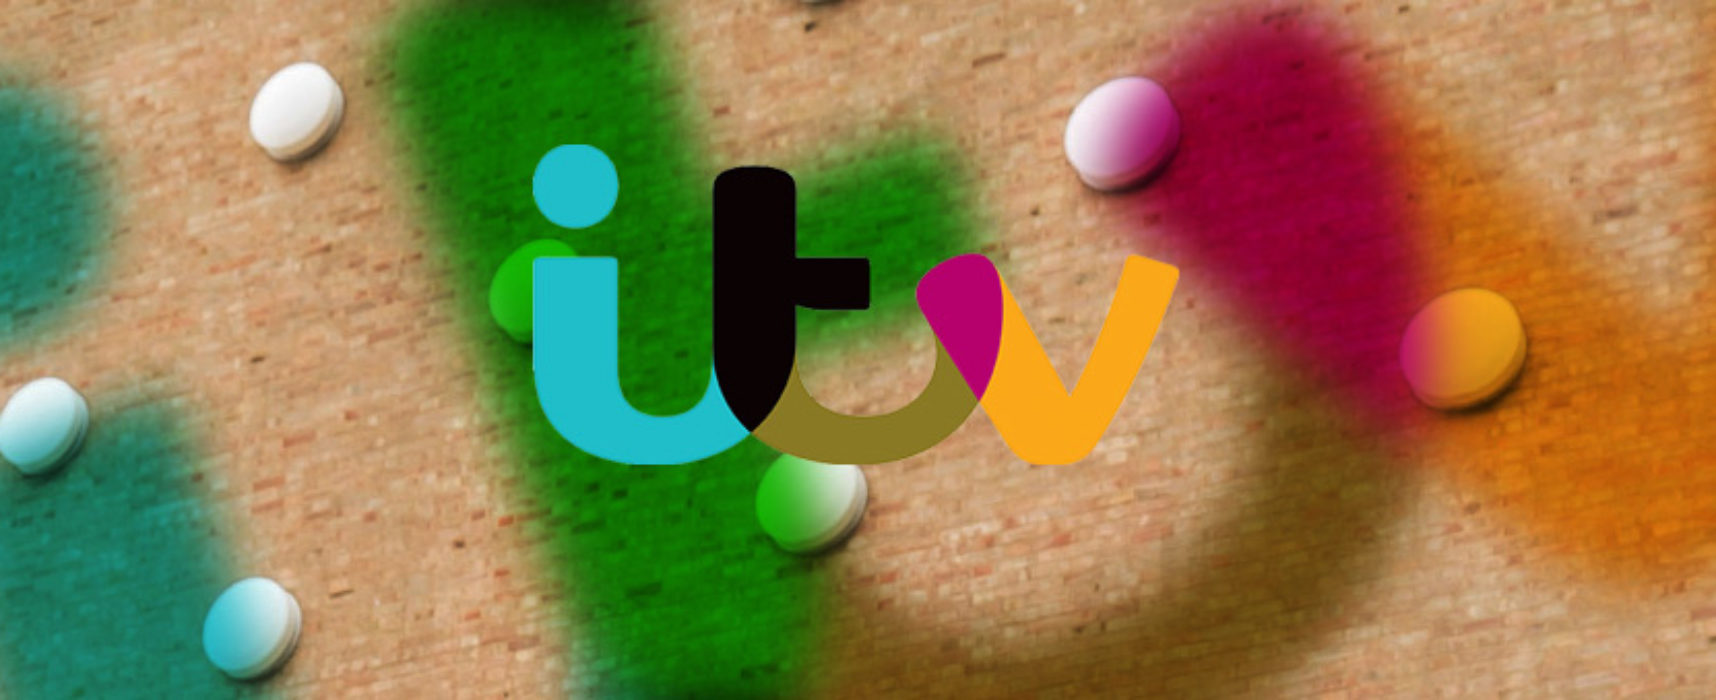 Jeff Pope brings A Confession to ITV